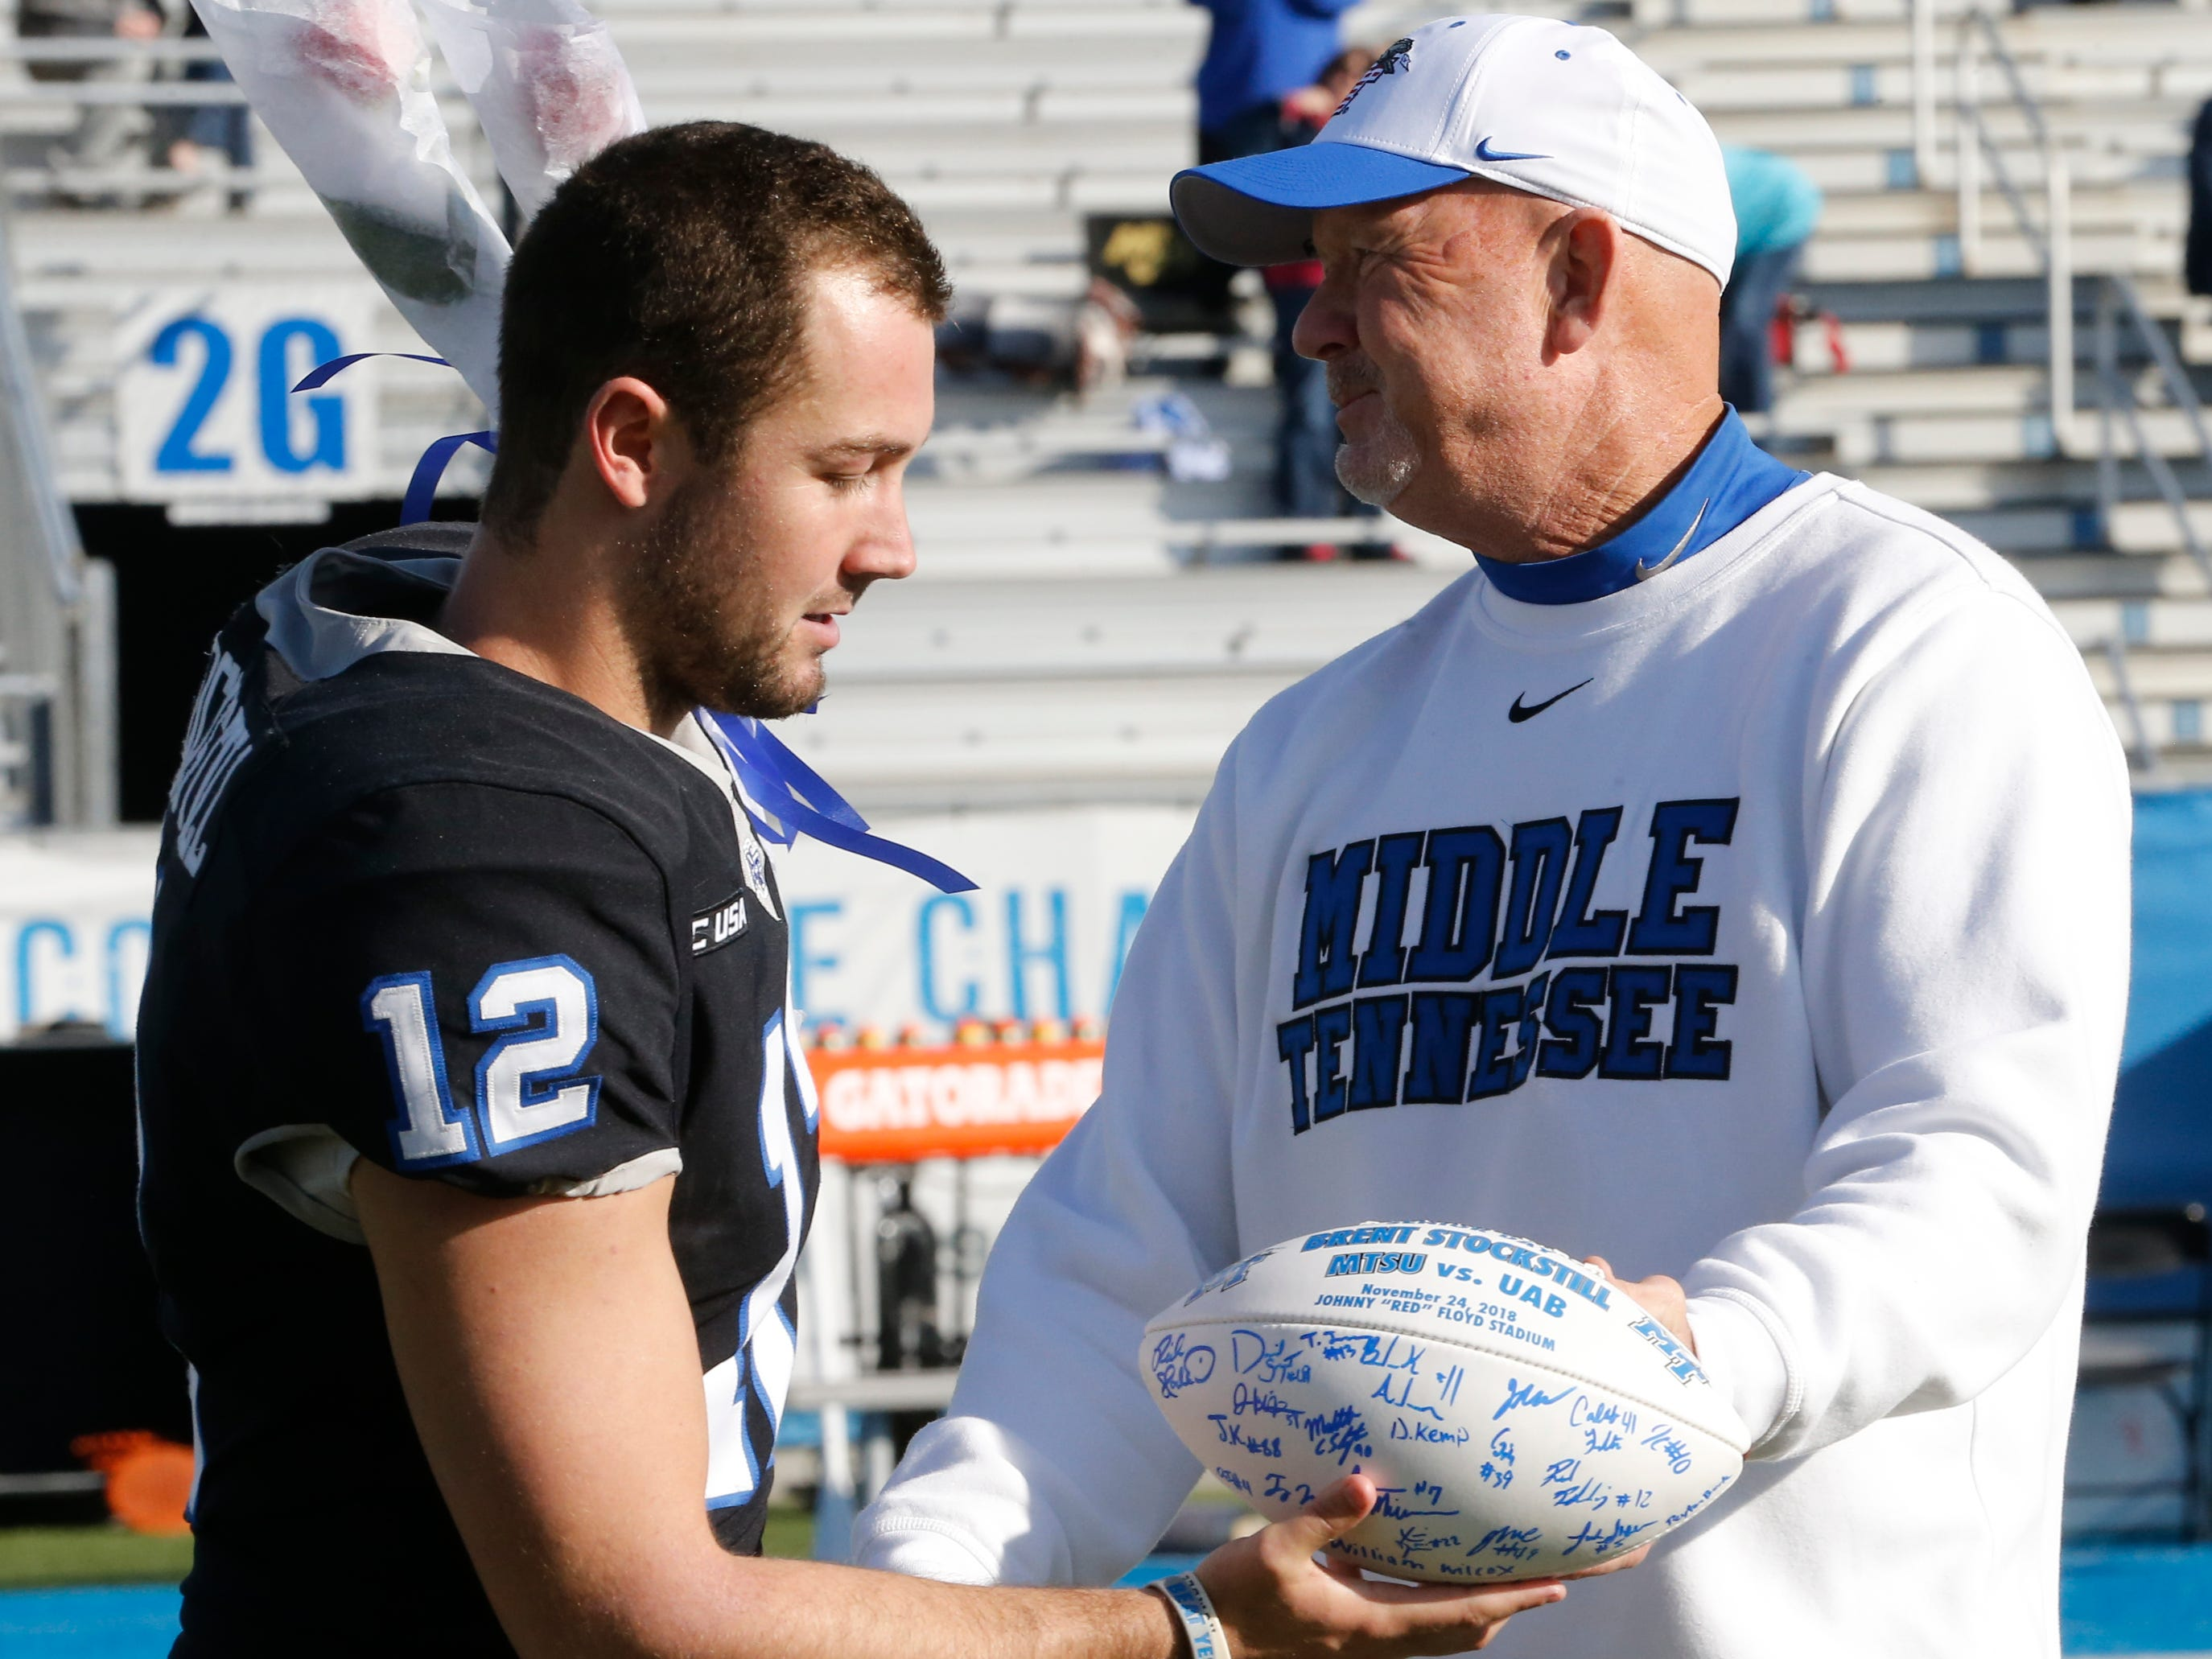 MTSU head football coach Rick Stockstill presents his on and MTSU quarterback Brent Stockstill a signed MTSU football as Brent Stockstill is honored with the other senior football players on Senior Day, before the start of the game against UAB at MTSU, on Saturday, Sept. 29, 2018.